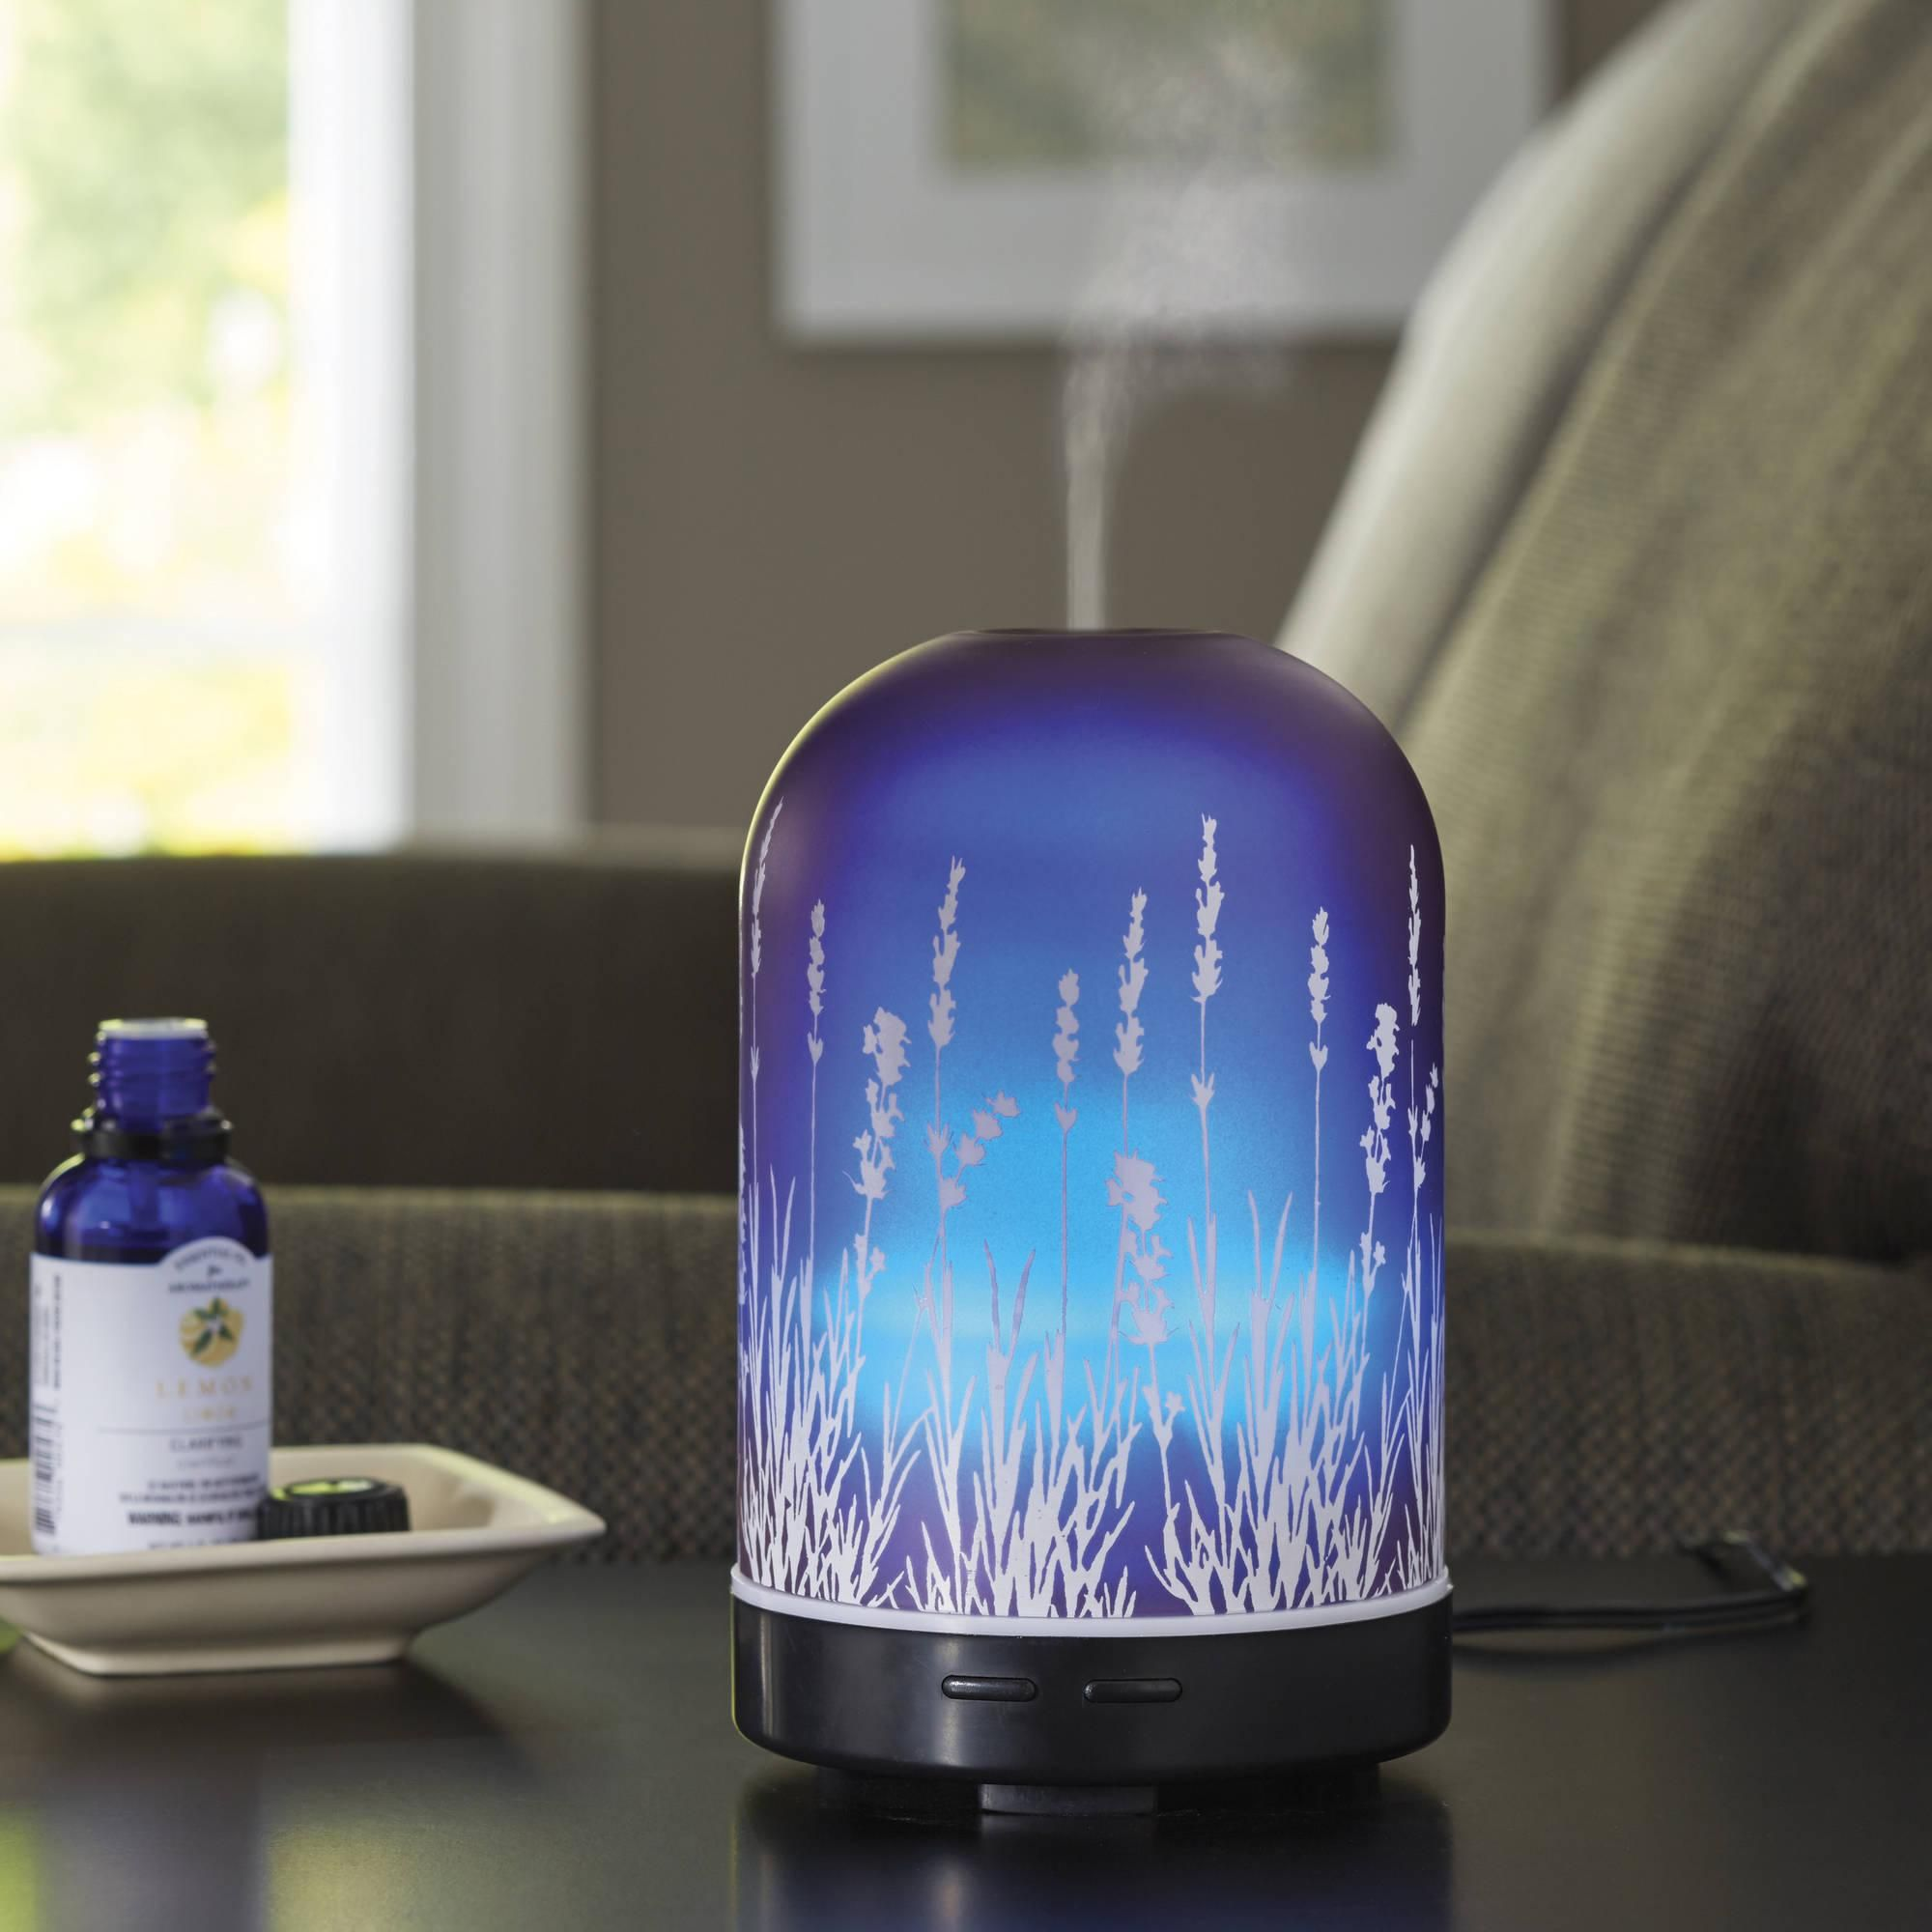 Better Homes And Gardens Essential Oil Diffuser Lavender Fields Household: better homes and gardens diffuser